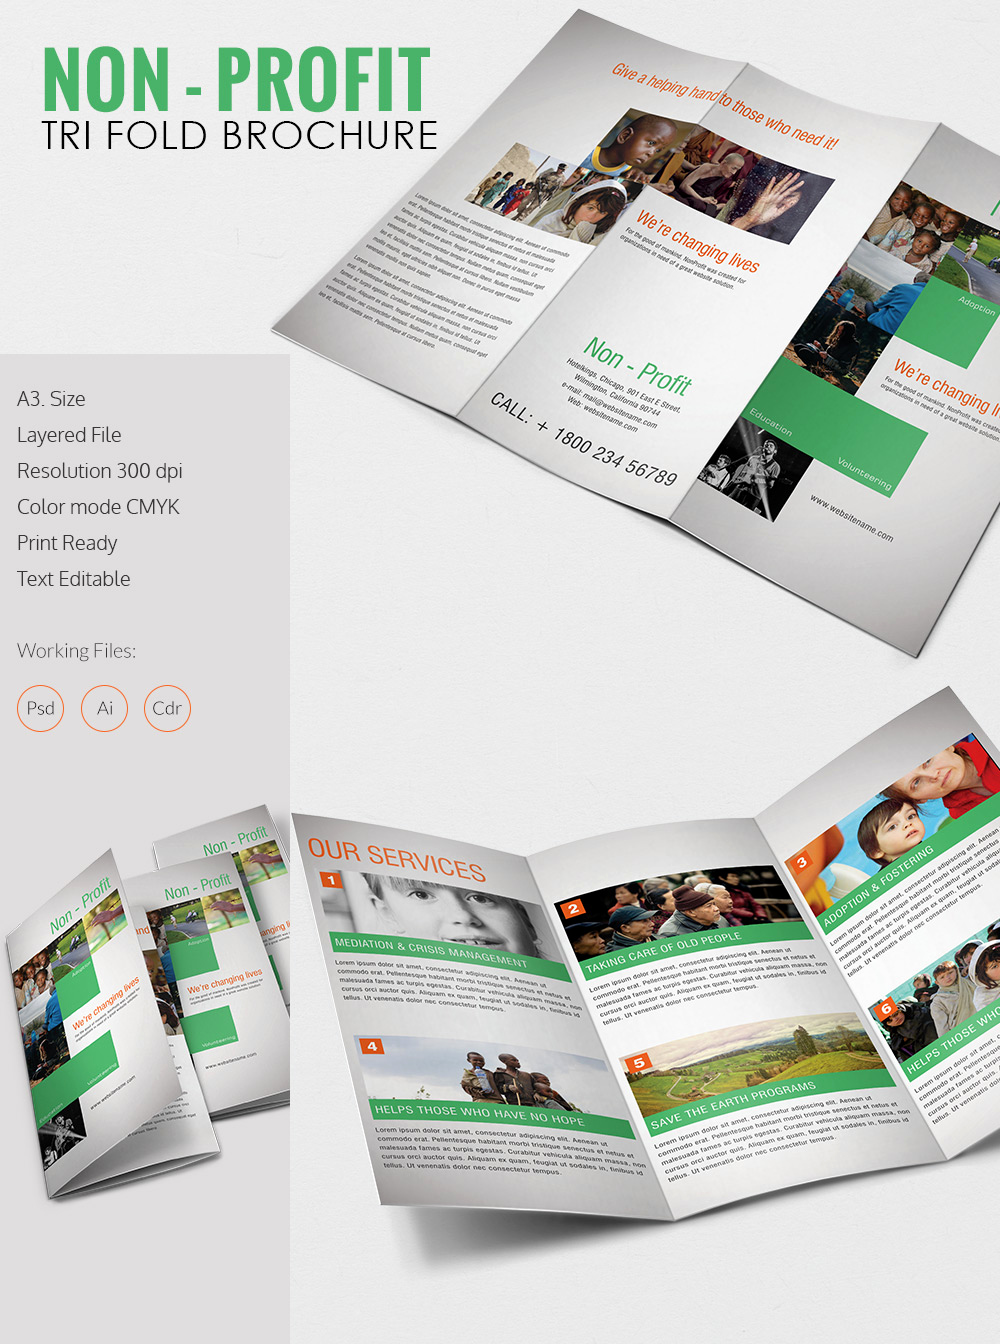 Tri Fold Brochure Size Awesome Amazing Non Profit A3 Tri Fold Brochure Template Download